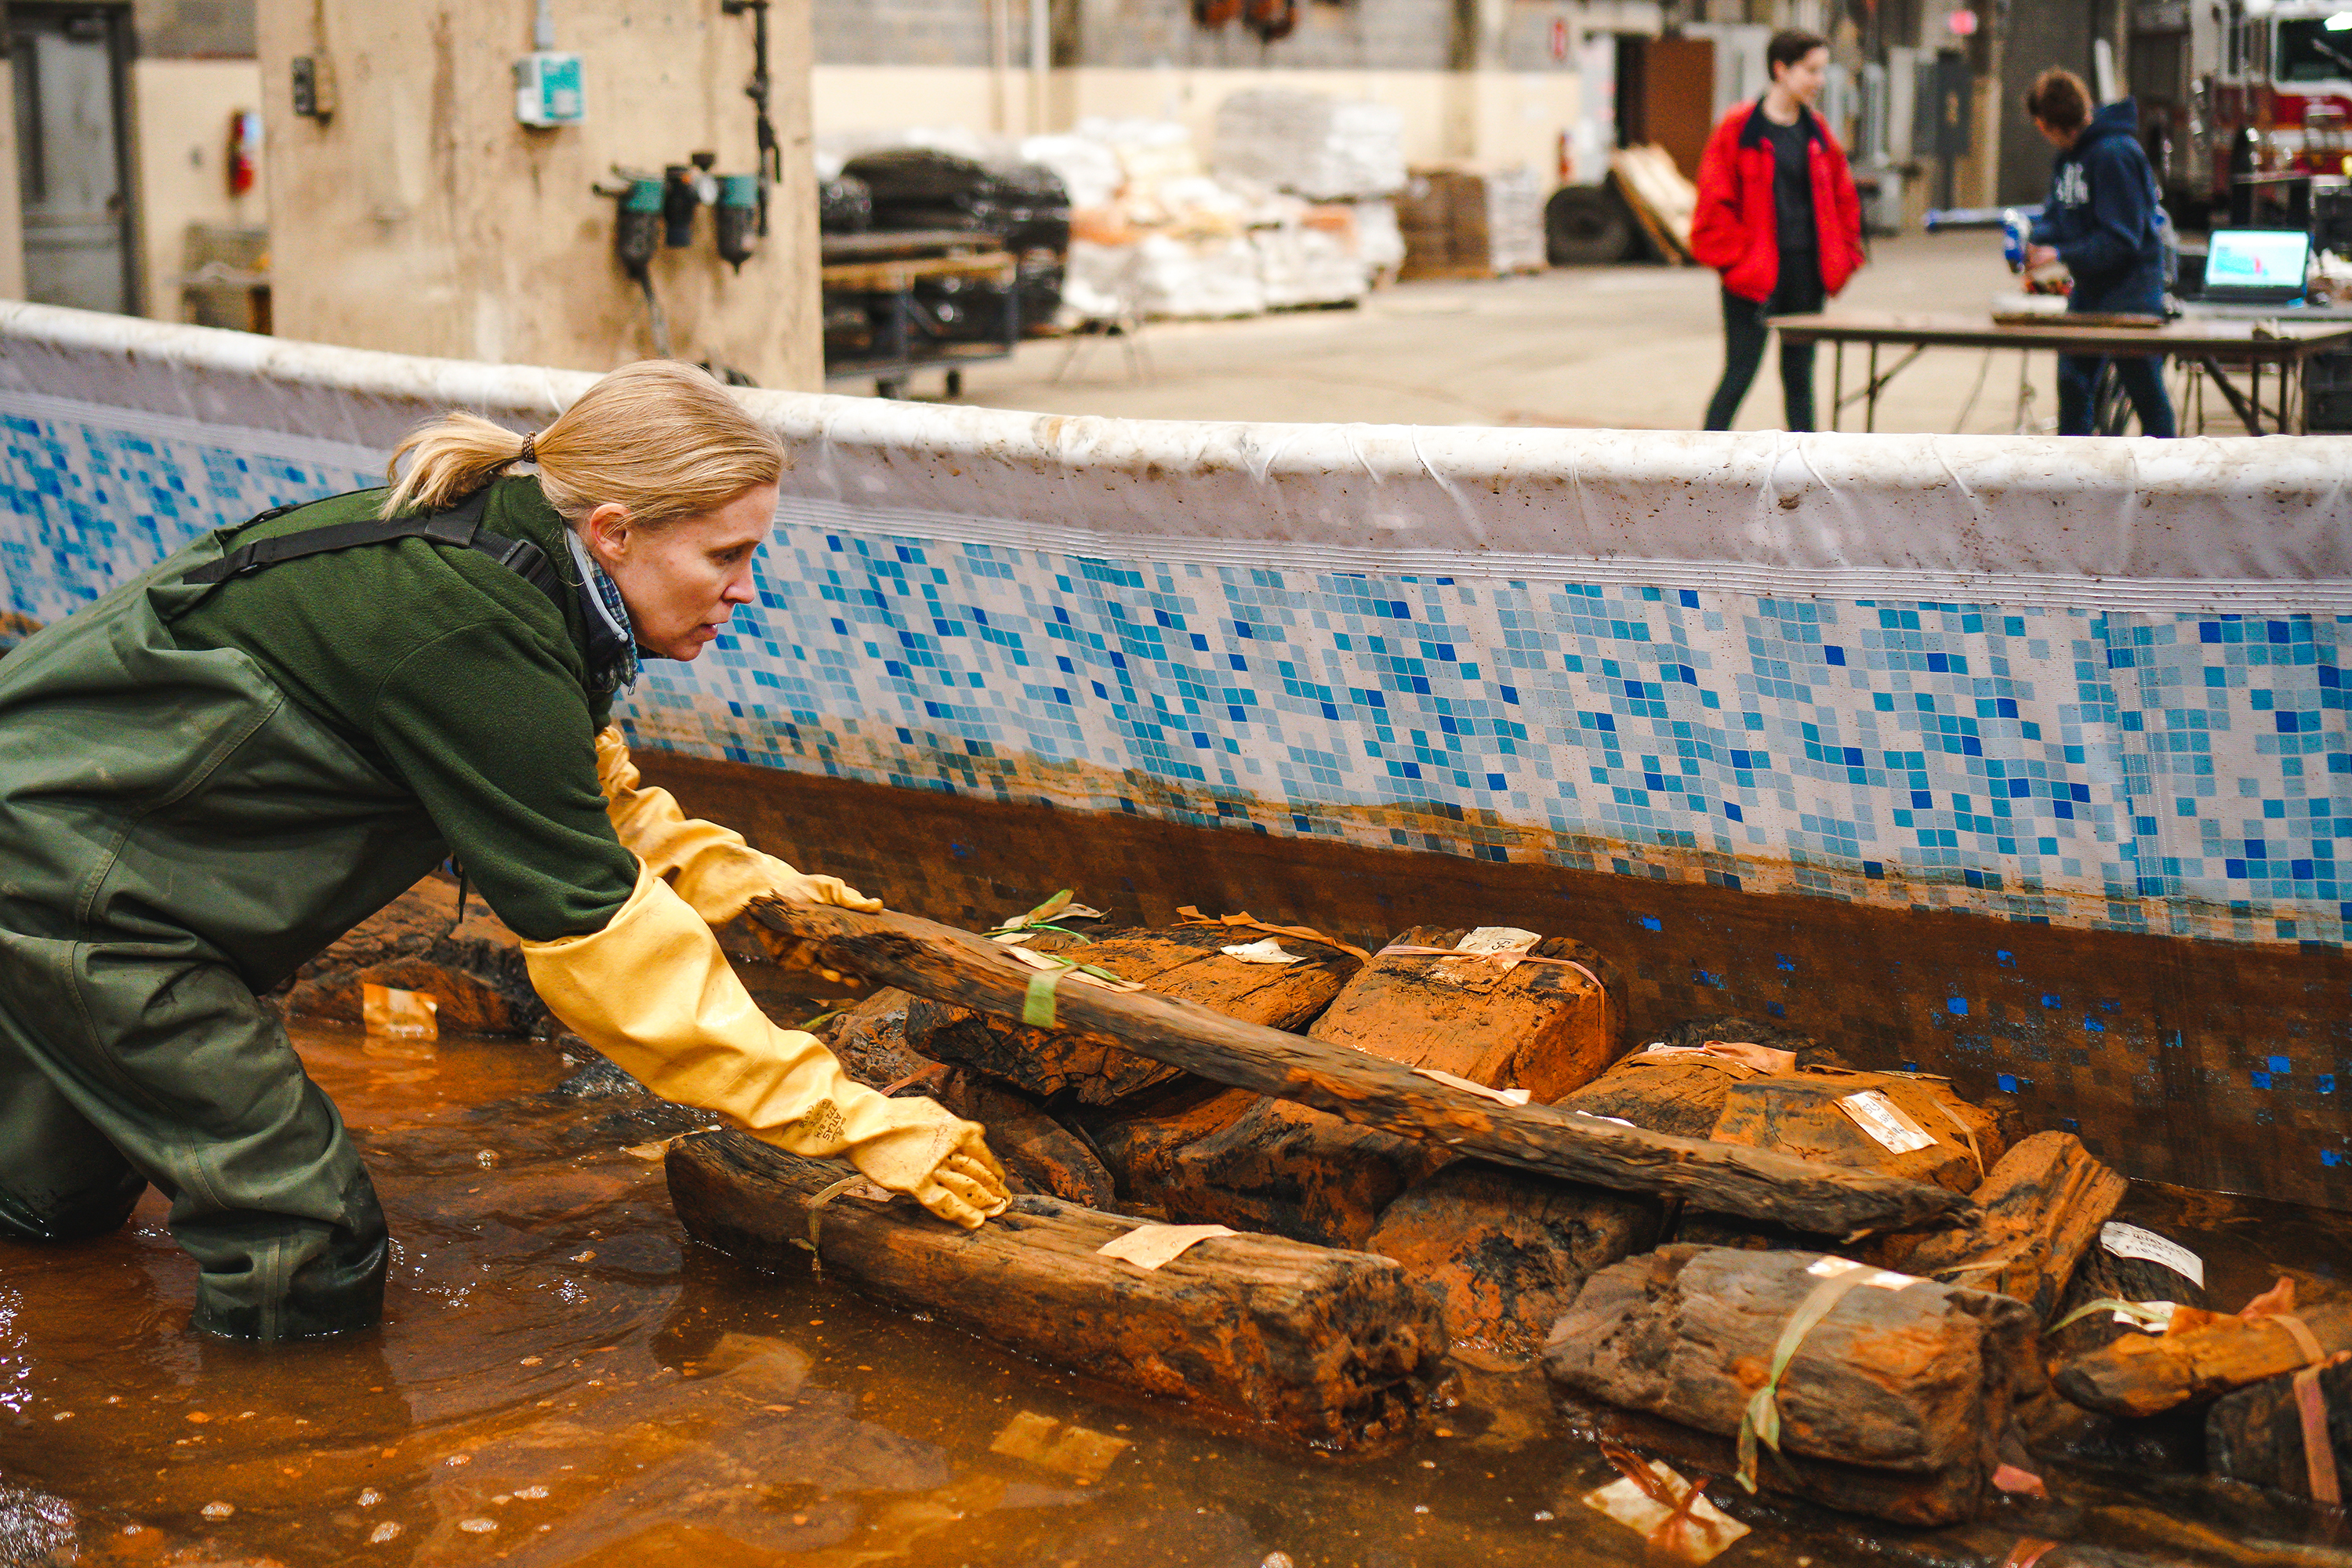 Boat Loads of History: Update on Old Town's Unearthed Ships & Artifacts of Centuries Past